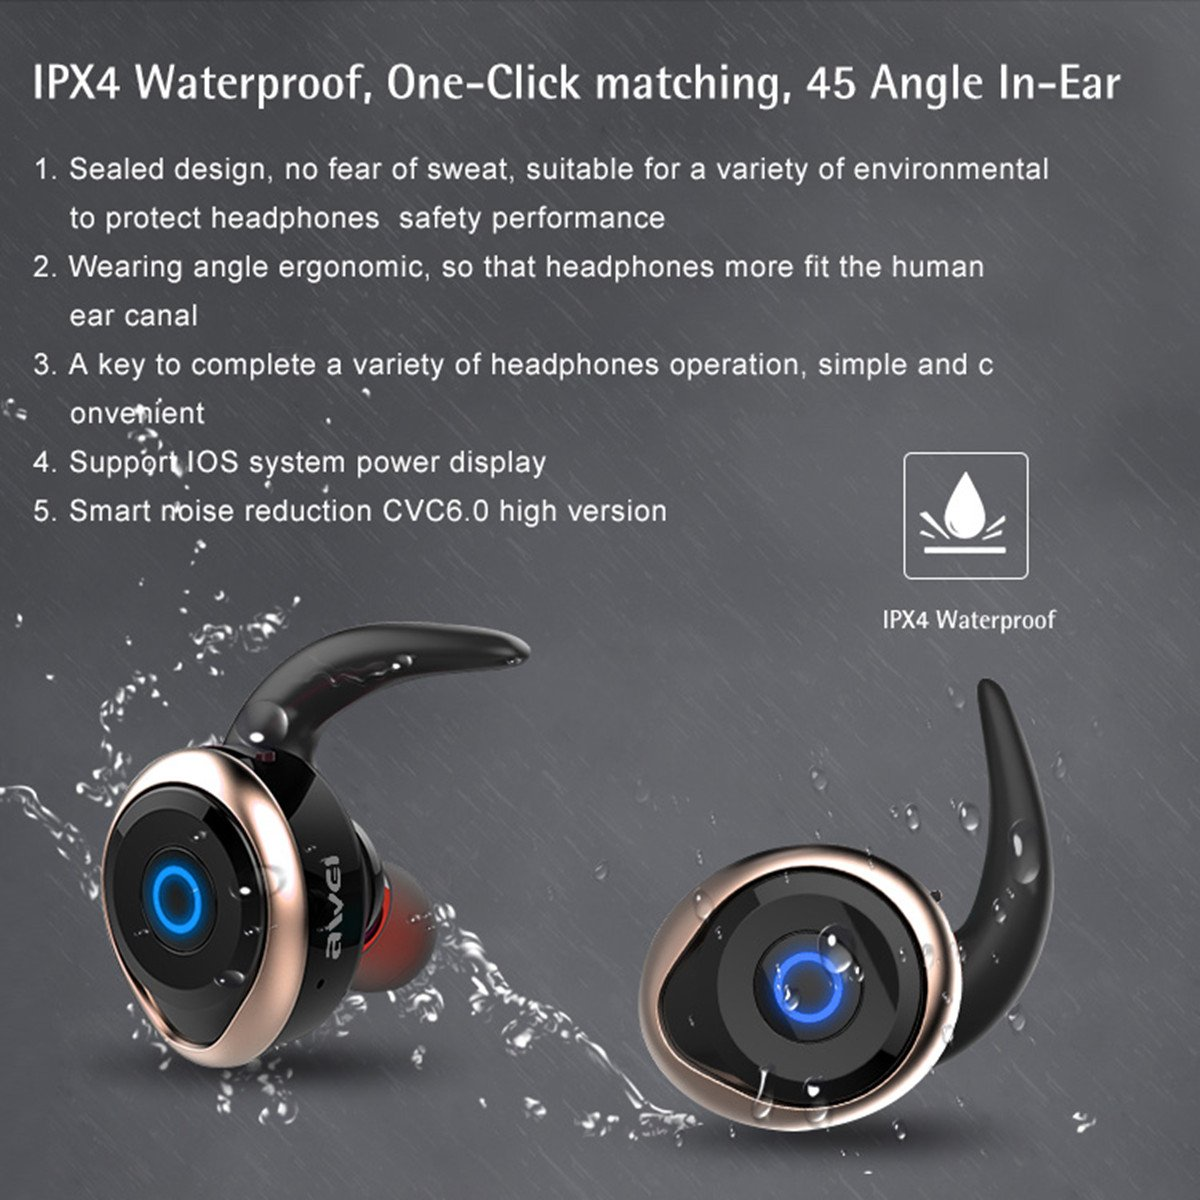 Awei T1 Single/Pairs Ture Wireless Get Rid Of Wire Binding earbuds, One Button Operation Bluetooth V4.2 Waterproof IPX4 Sport Headphones for Running Gym Exercise Hands-free Calling for iphone7(Gold) by AWEI (Image #5)